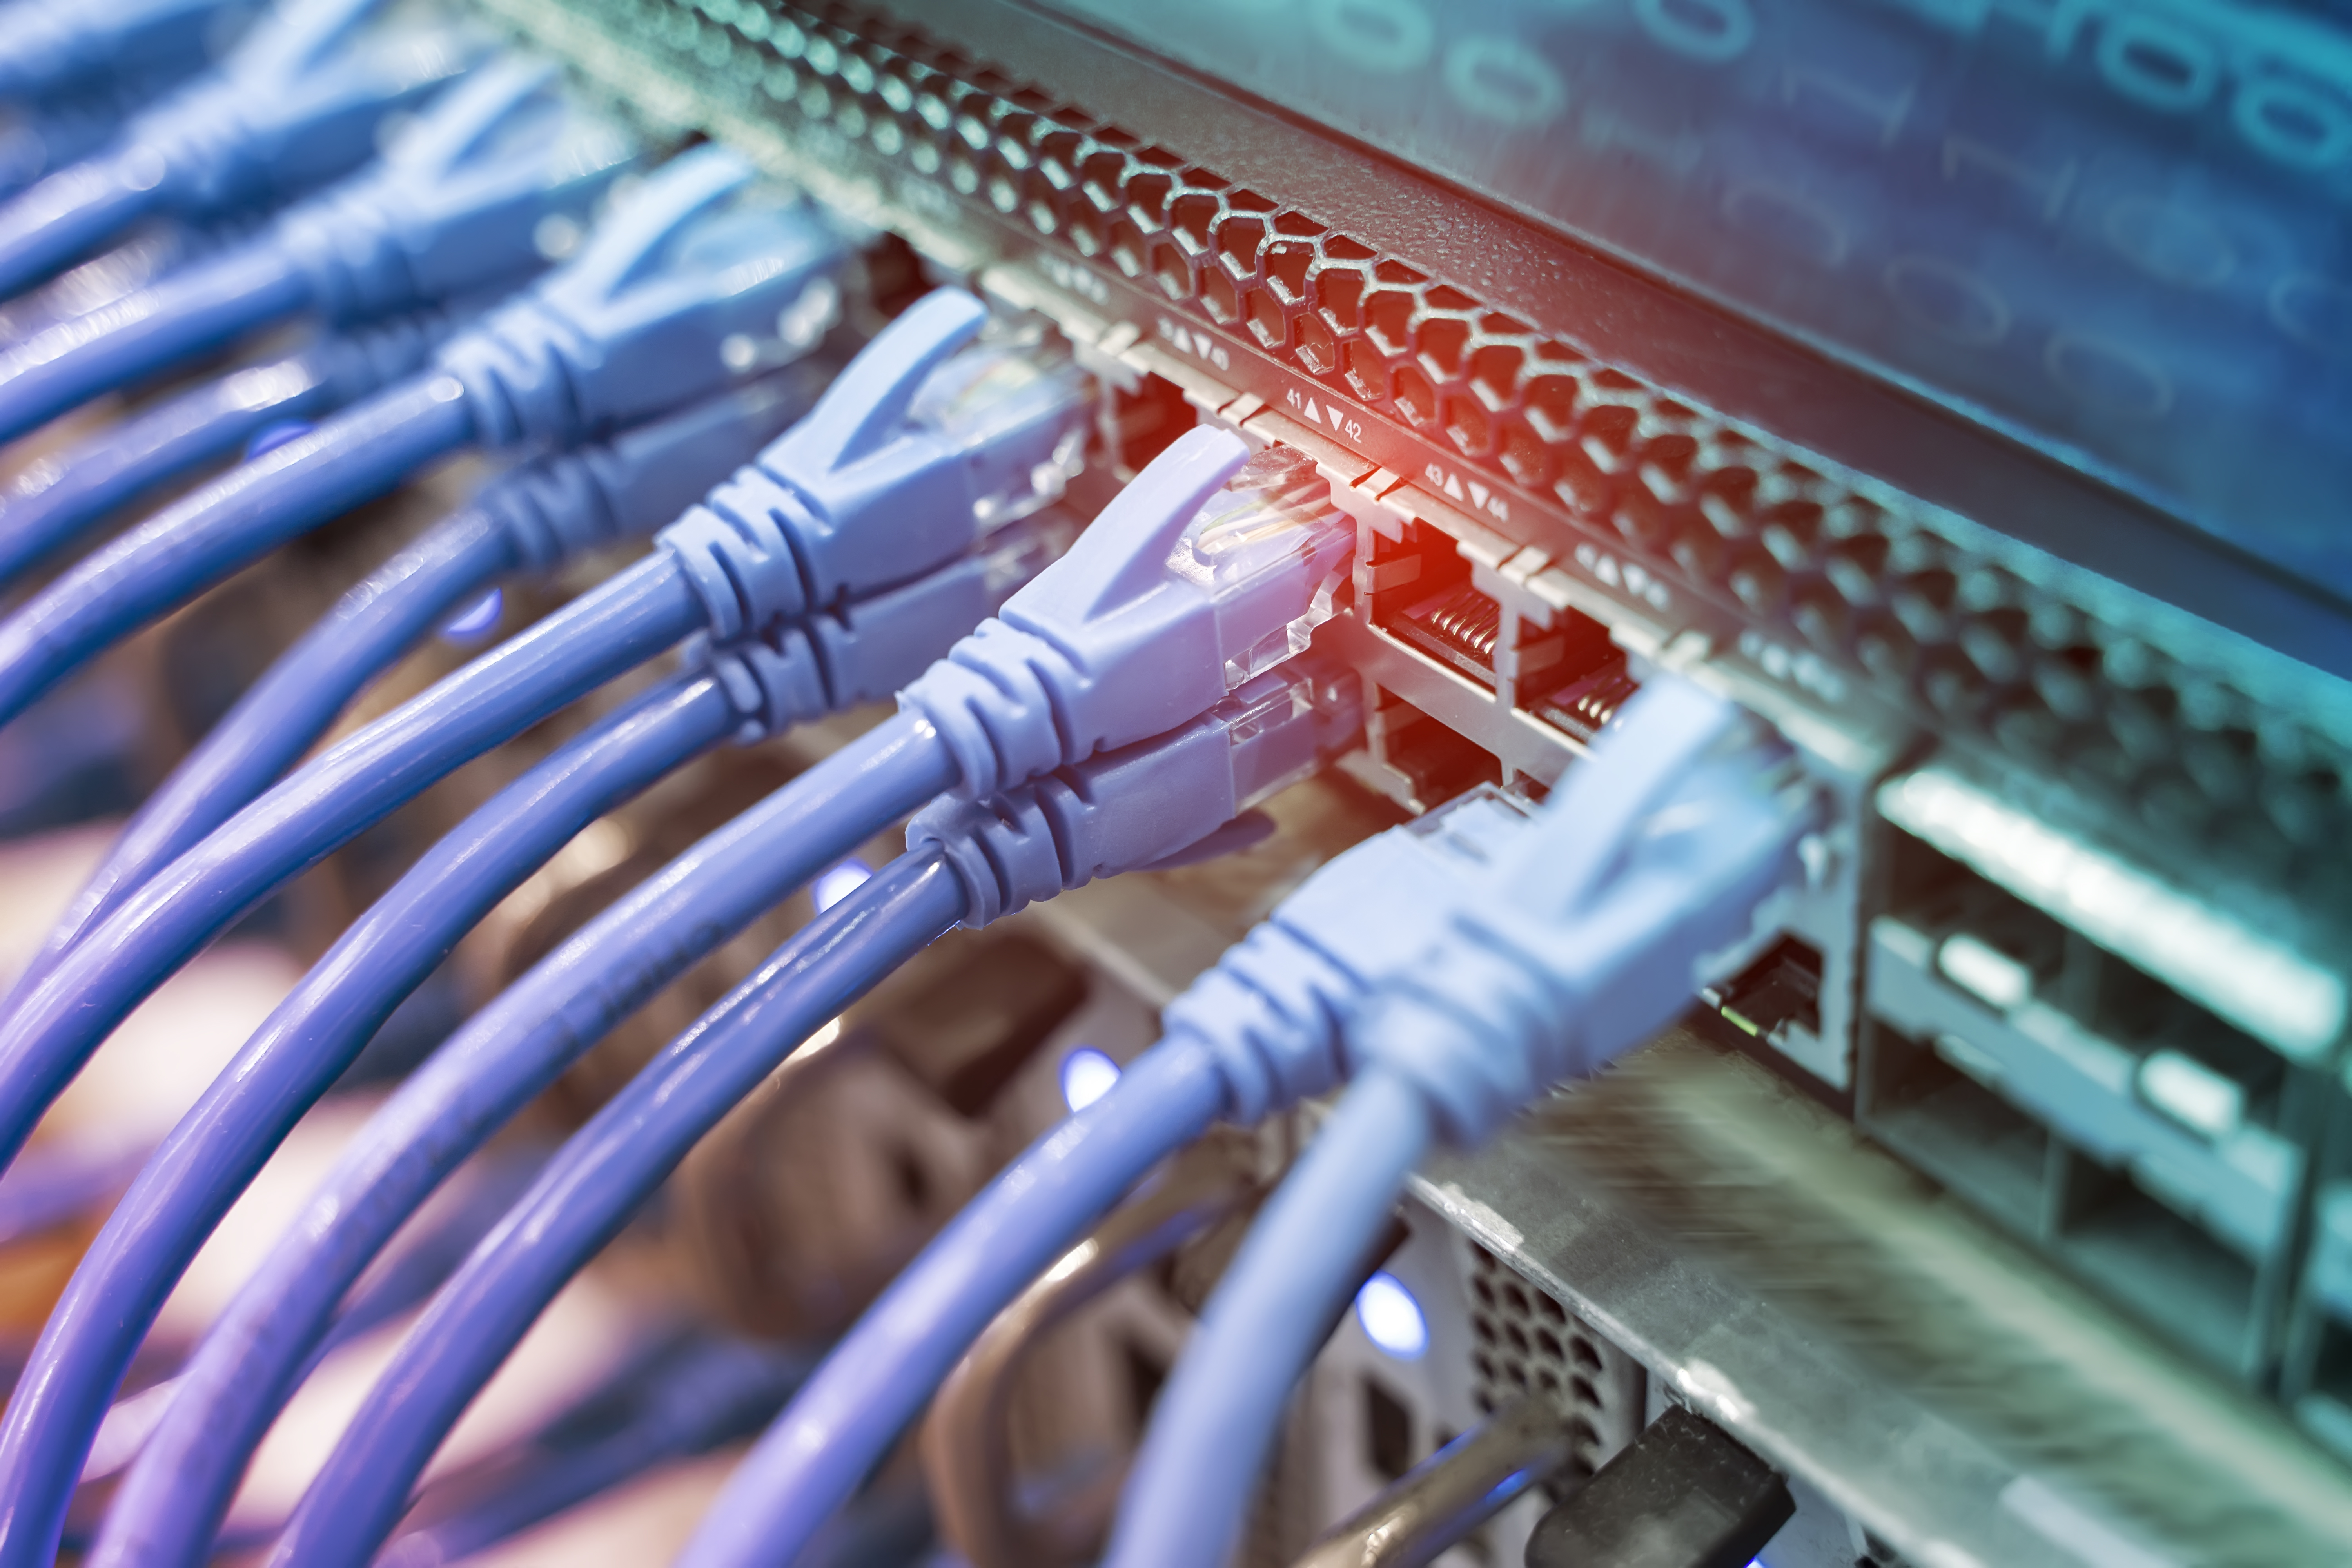 Is it Better to Have Your Own IT Infrastructure or to Use Cloud Services?